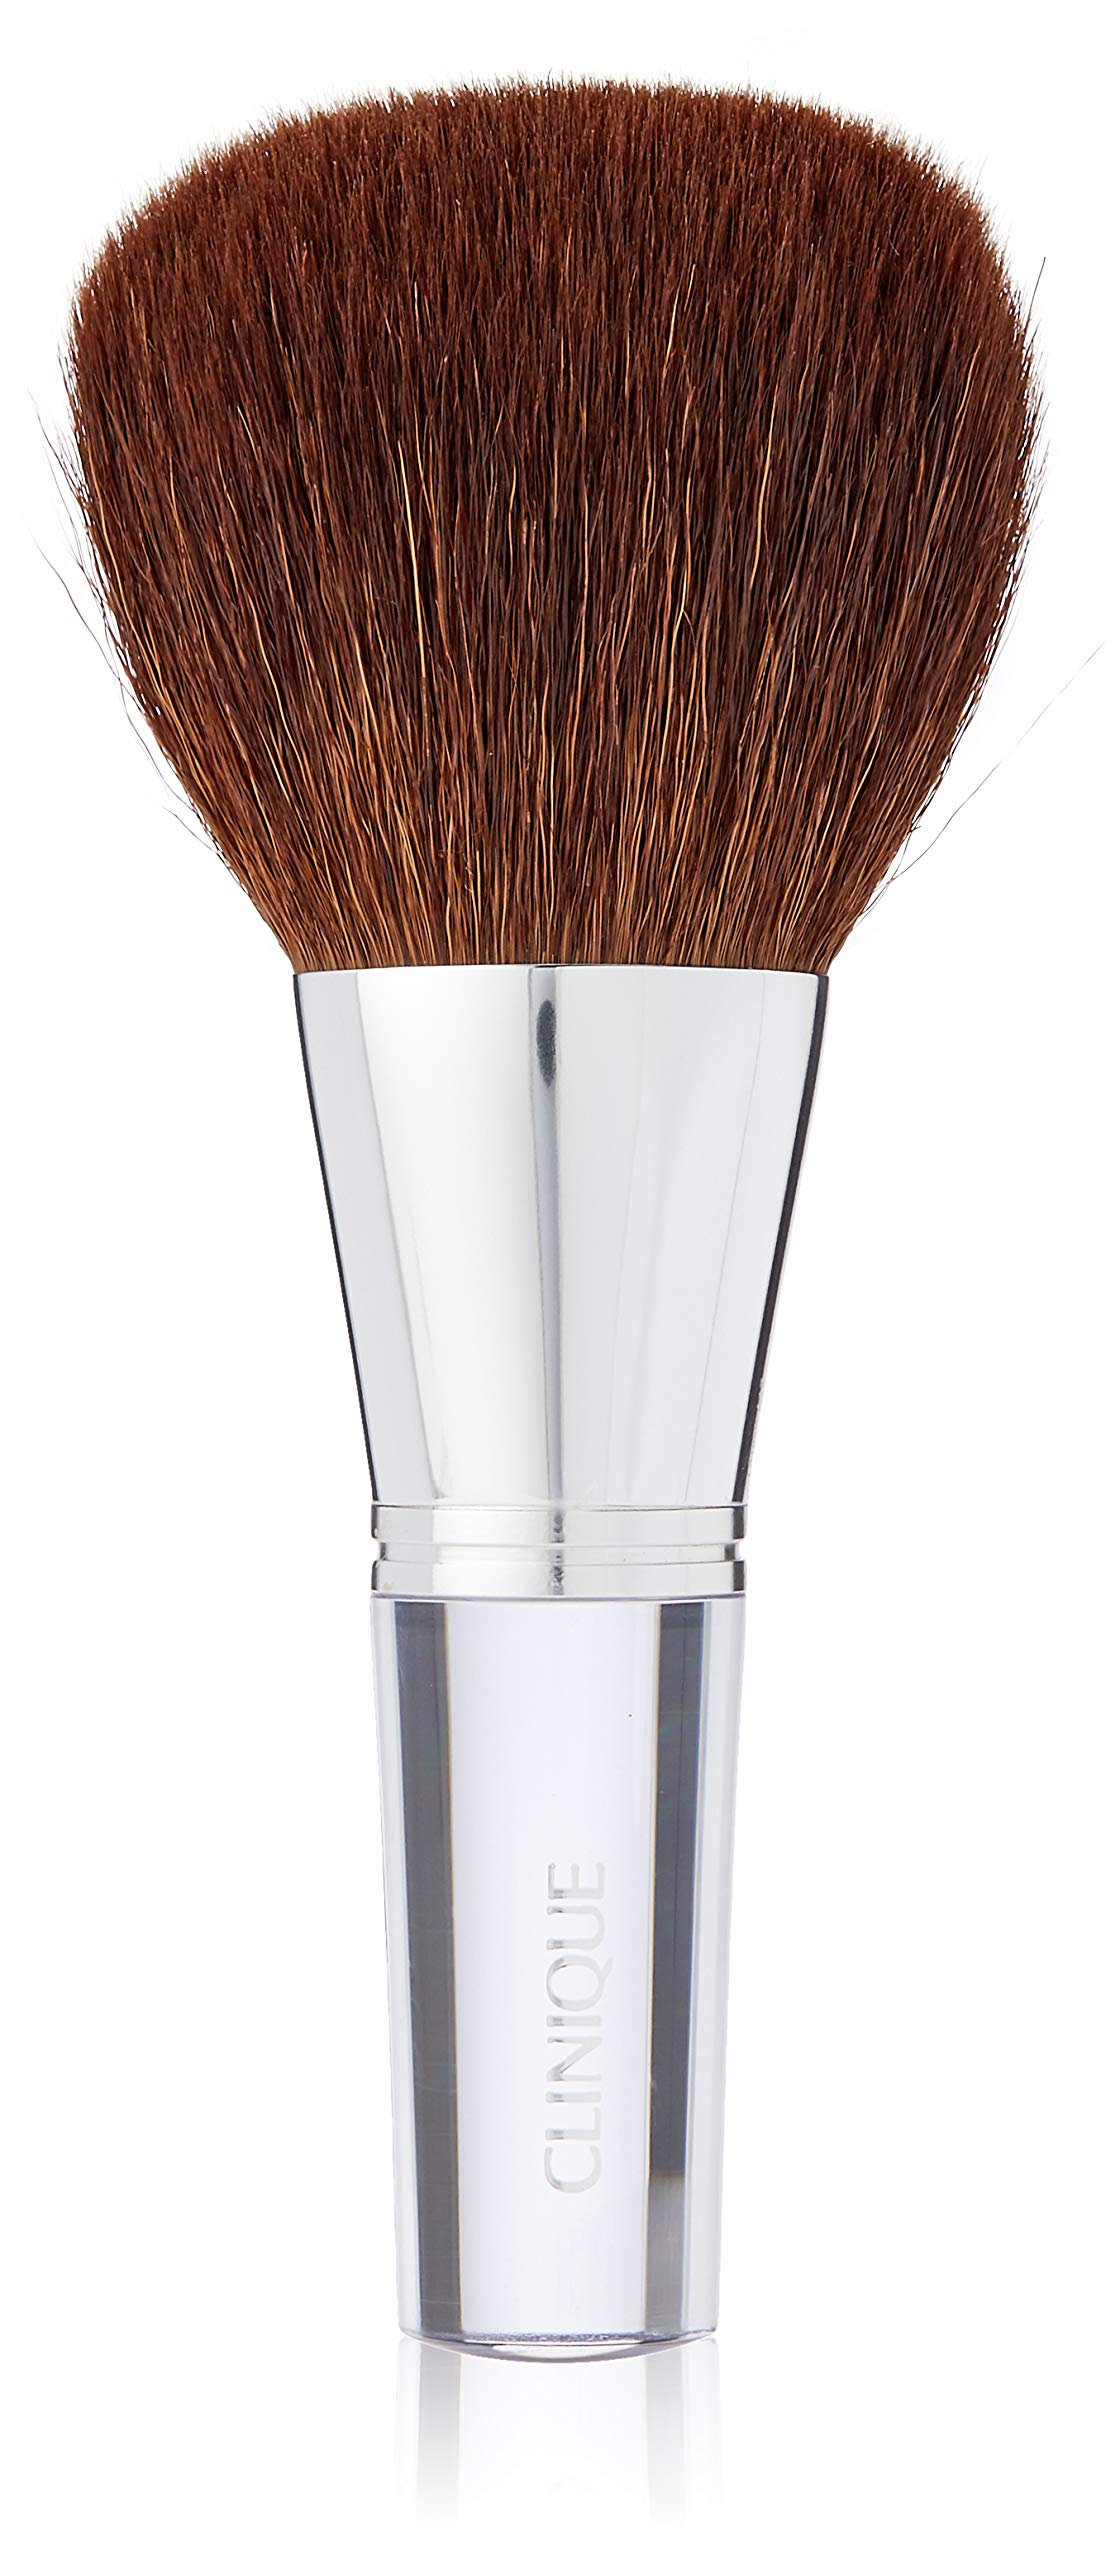 Clinique Brush Brush for Loose Or Compact Powder, 10 g